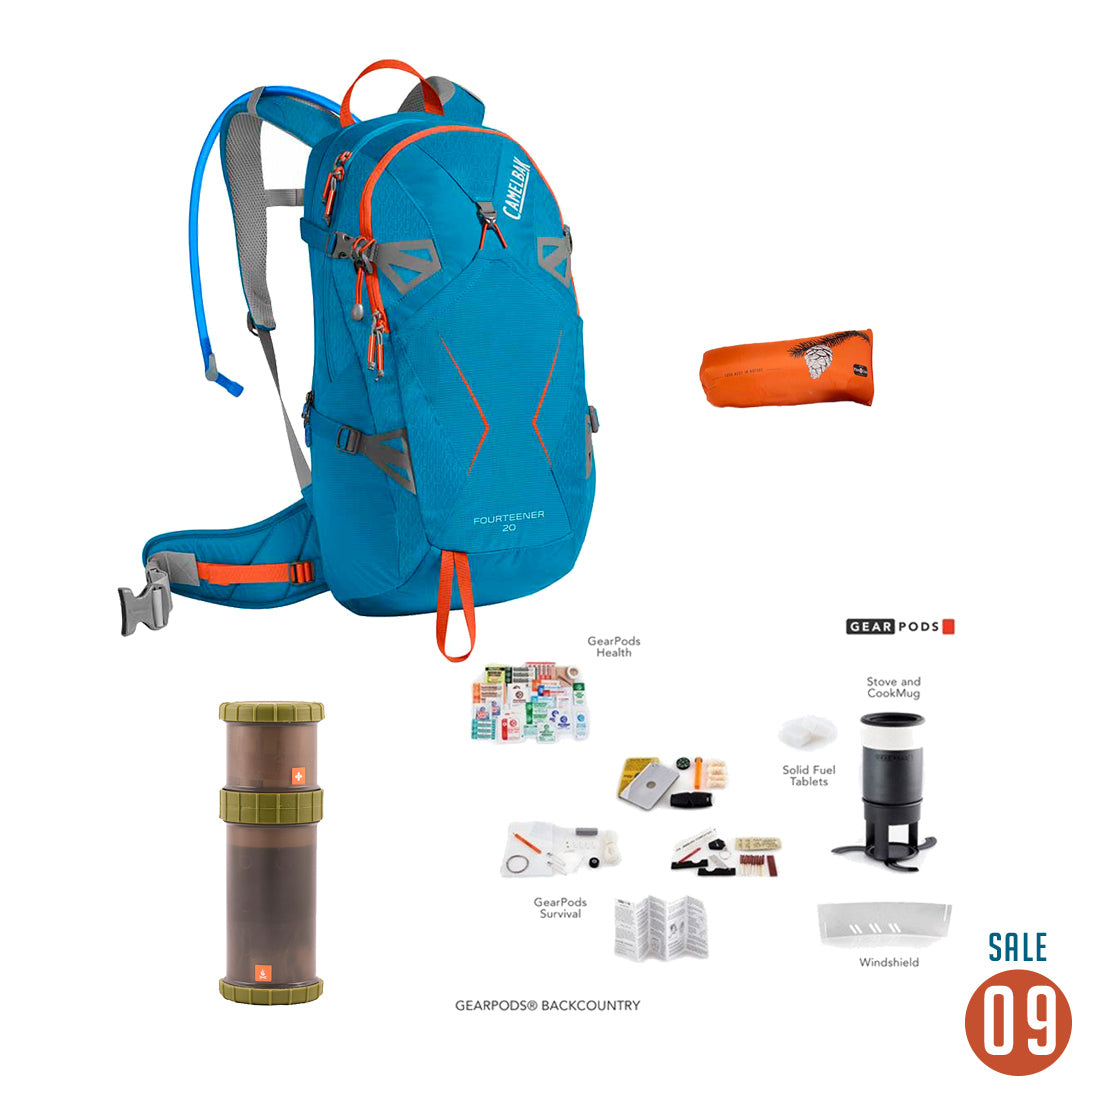 09 Sale - Camelbak Fourteener 20 Backcountry Package Accessories 4theoutdoors Canada SUP outdoors